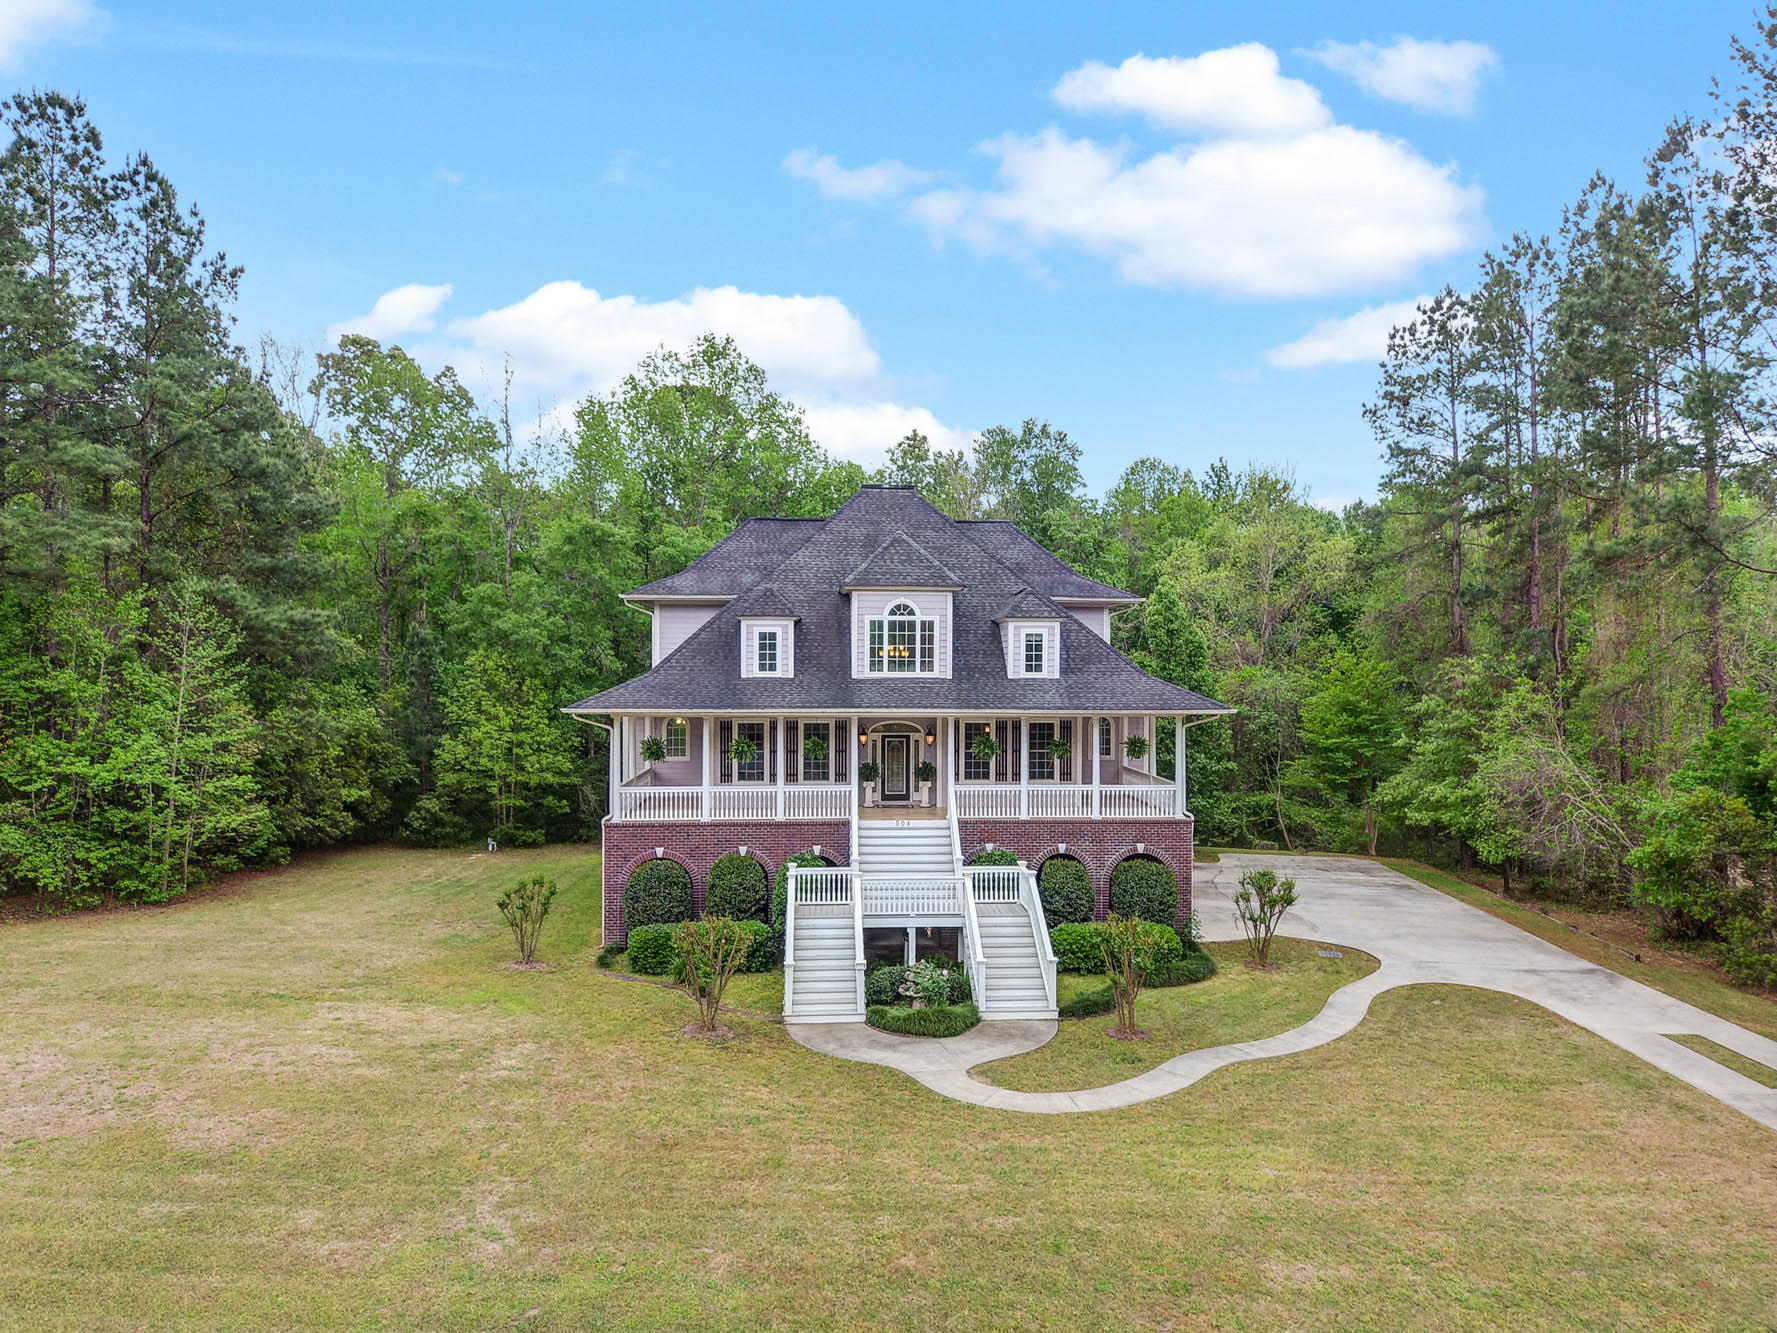 504 Cypress Point Drive, Summerville, 29486, 5 Bedrooms Bedrooms, ,4 BathroomsBathrooms,Residential,For Sale,Cypress Point,21010563